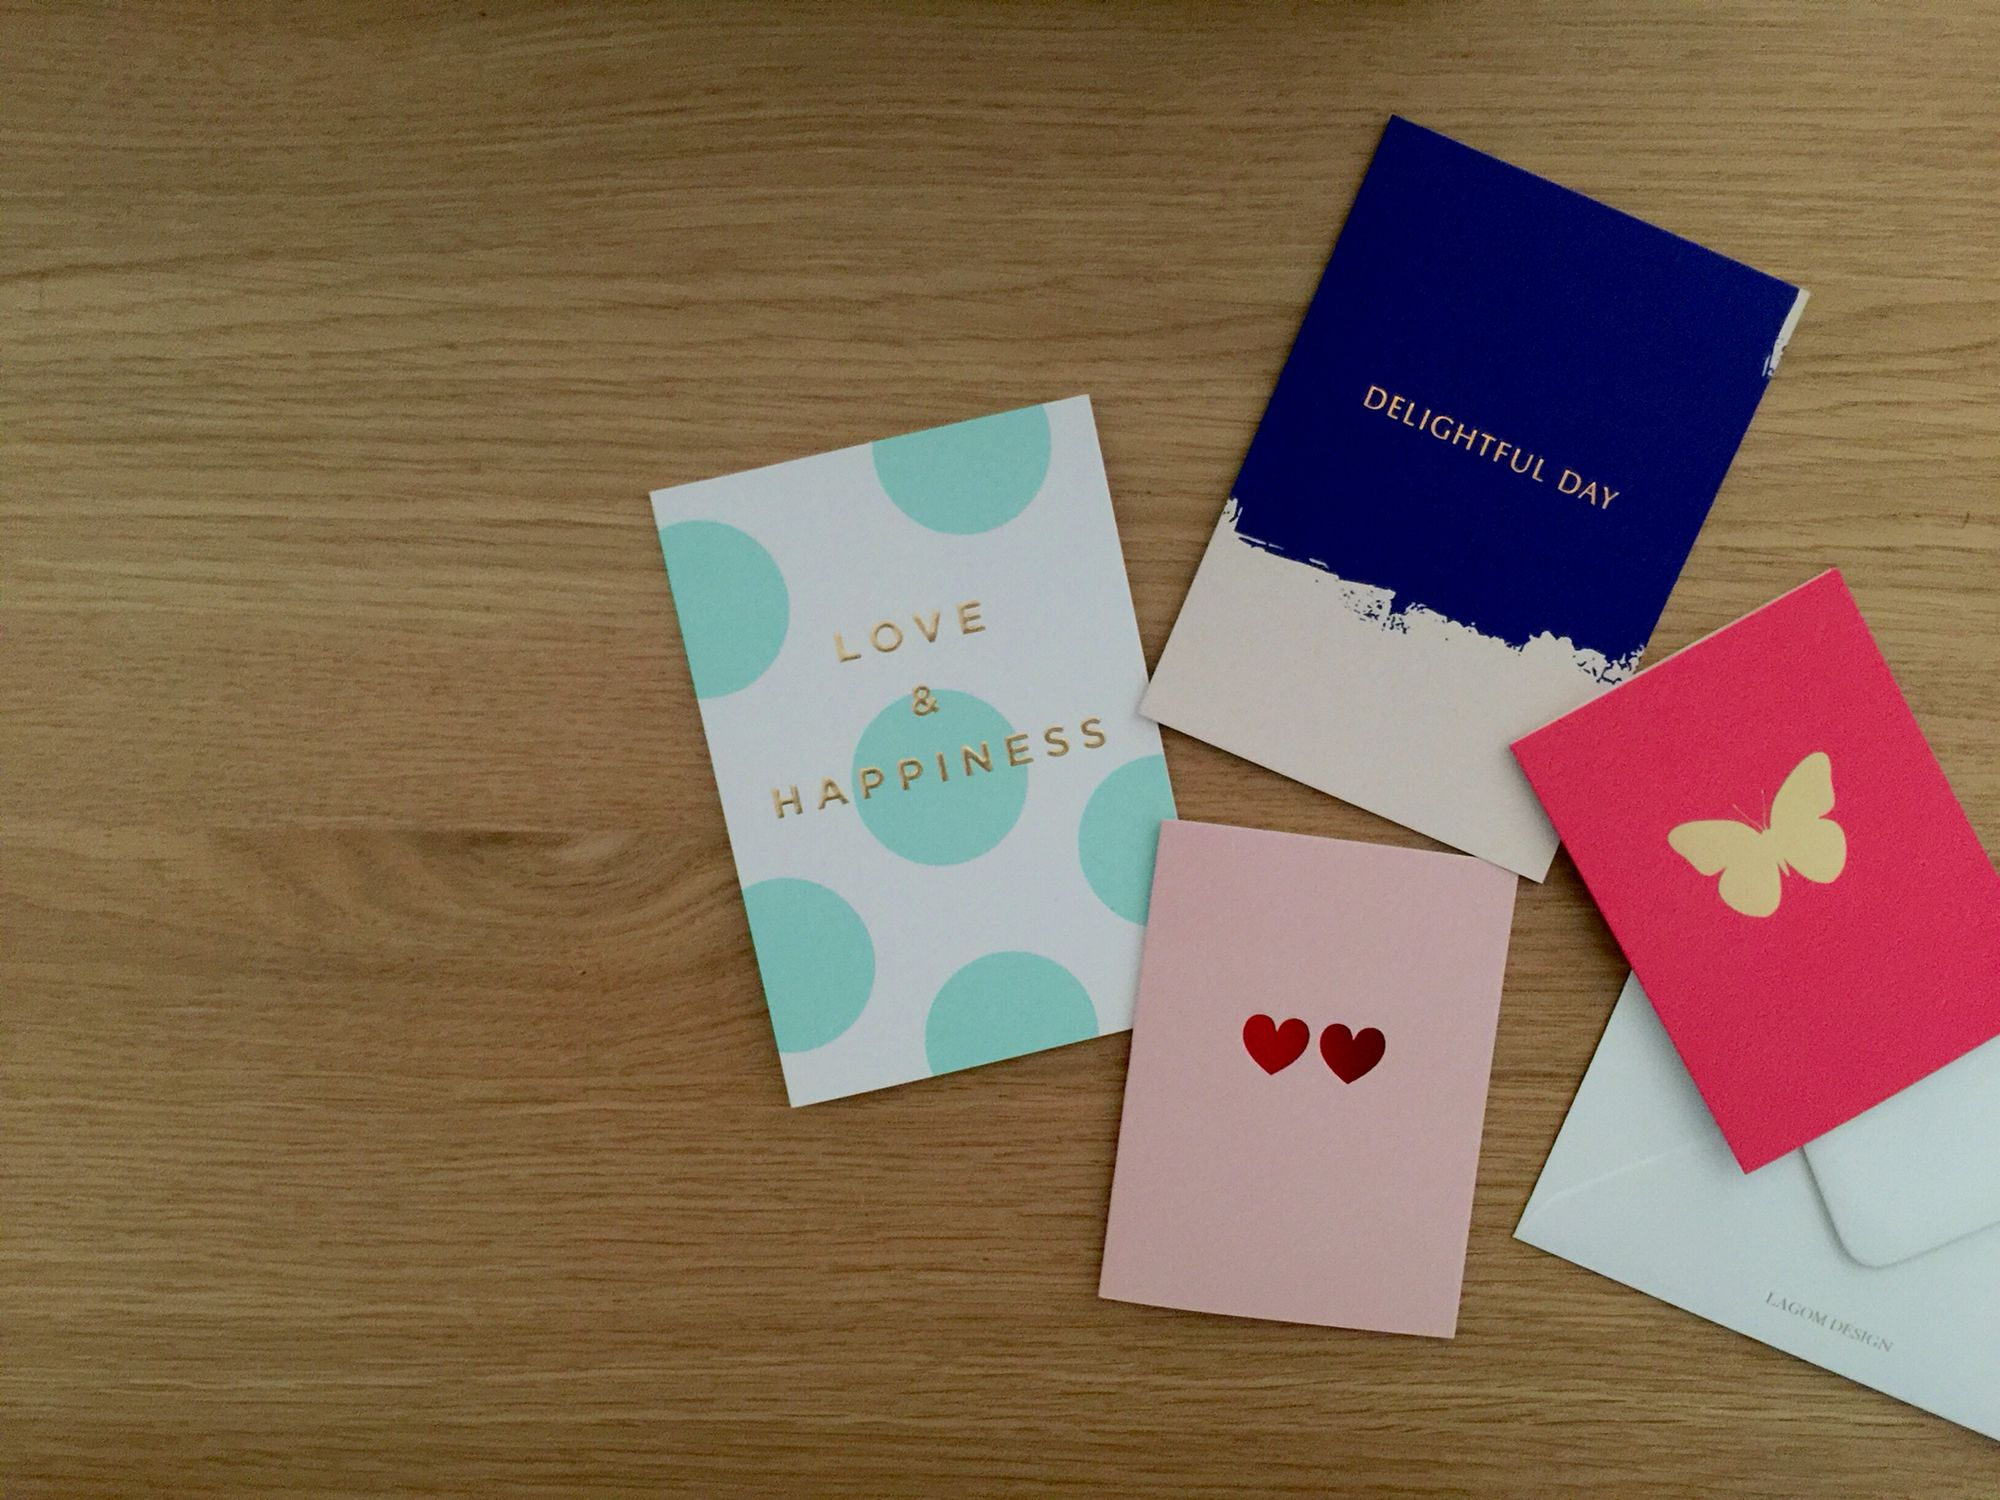 Contact Paper Craft Supplies Cards By Lagom Design